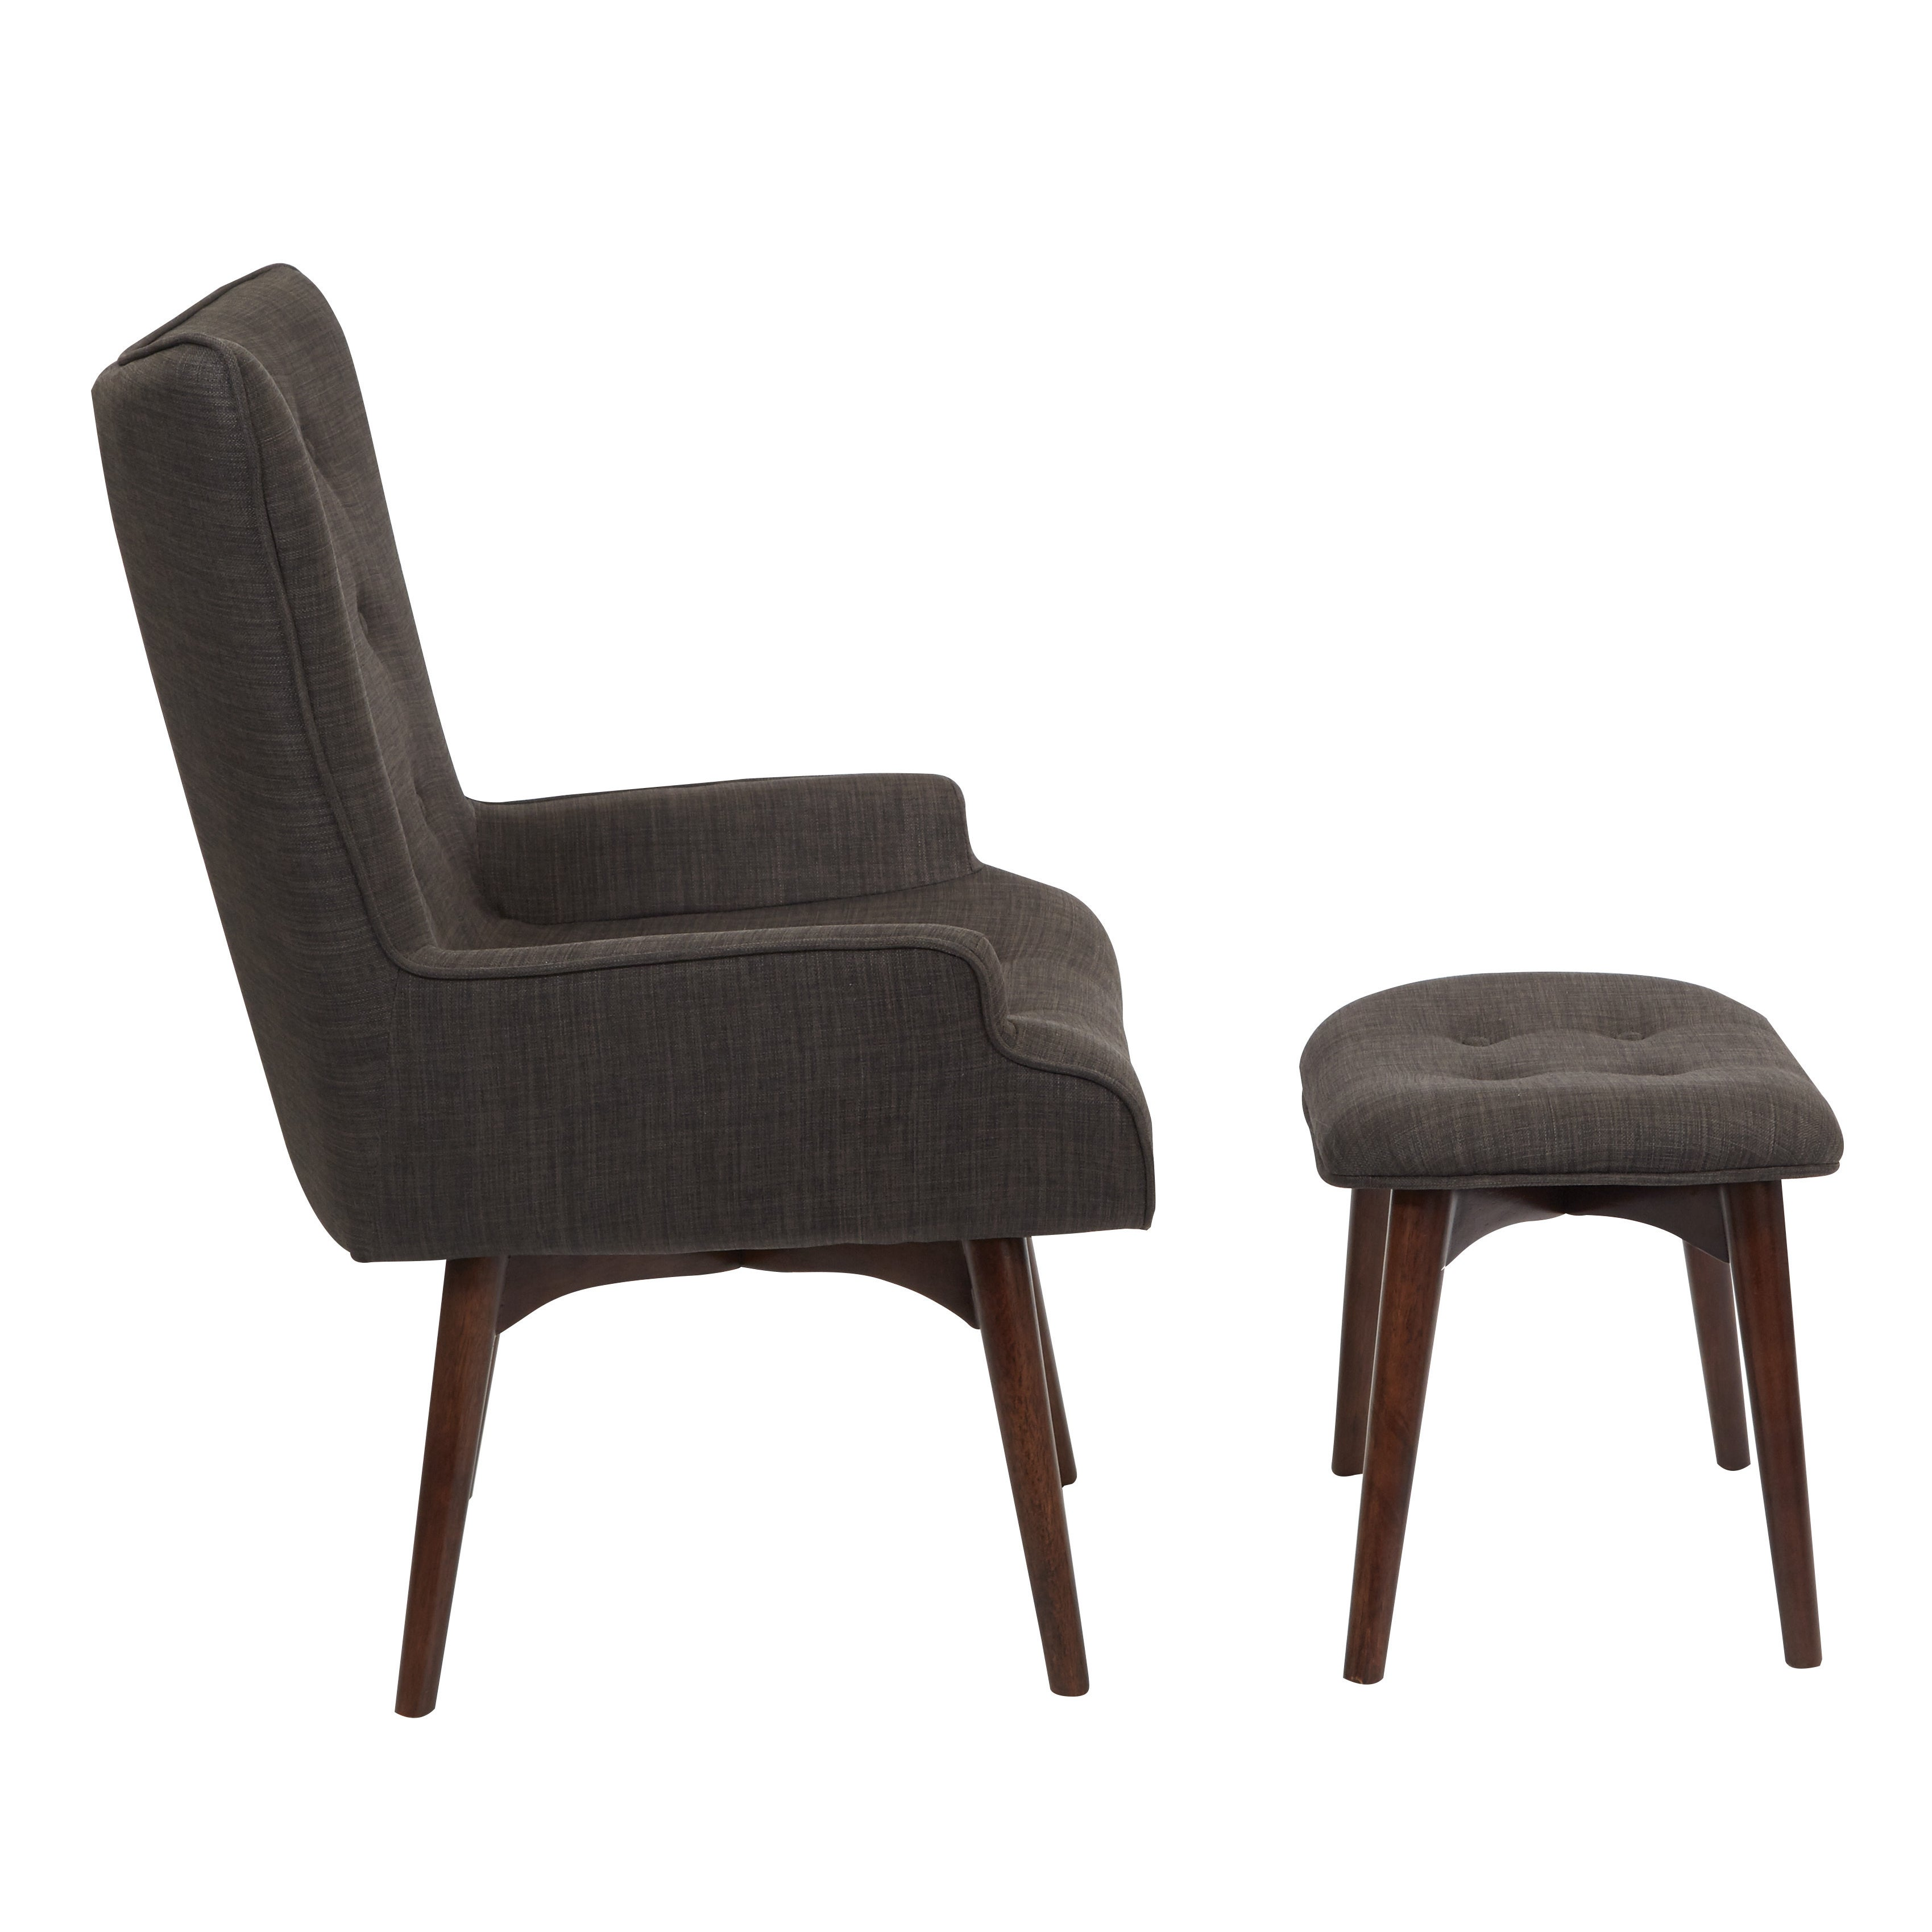 today and ottomans chair home modern fabric chairs sawyer mid by century overstock set club free product knight garden of ottoman shipping christopher